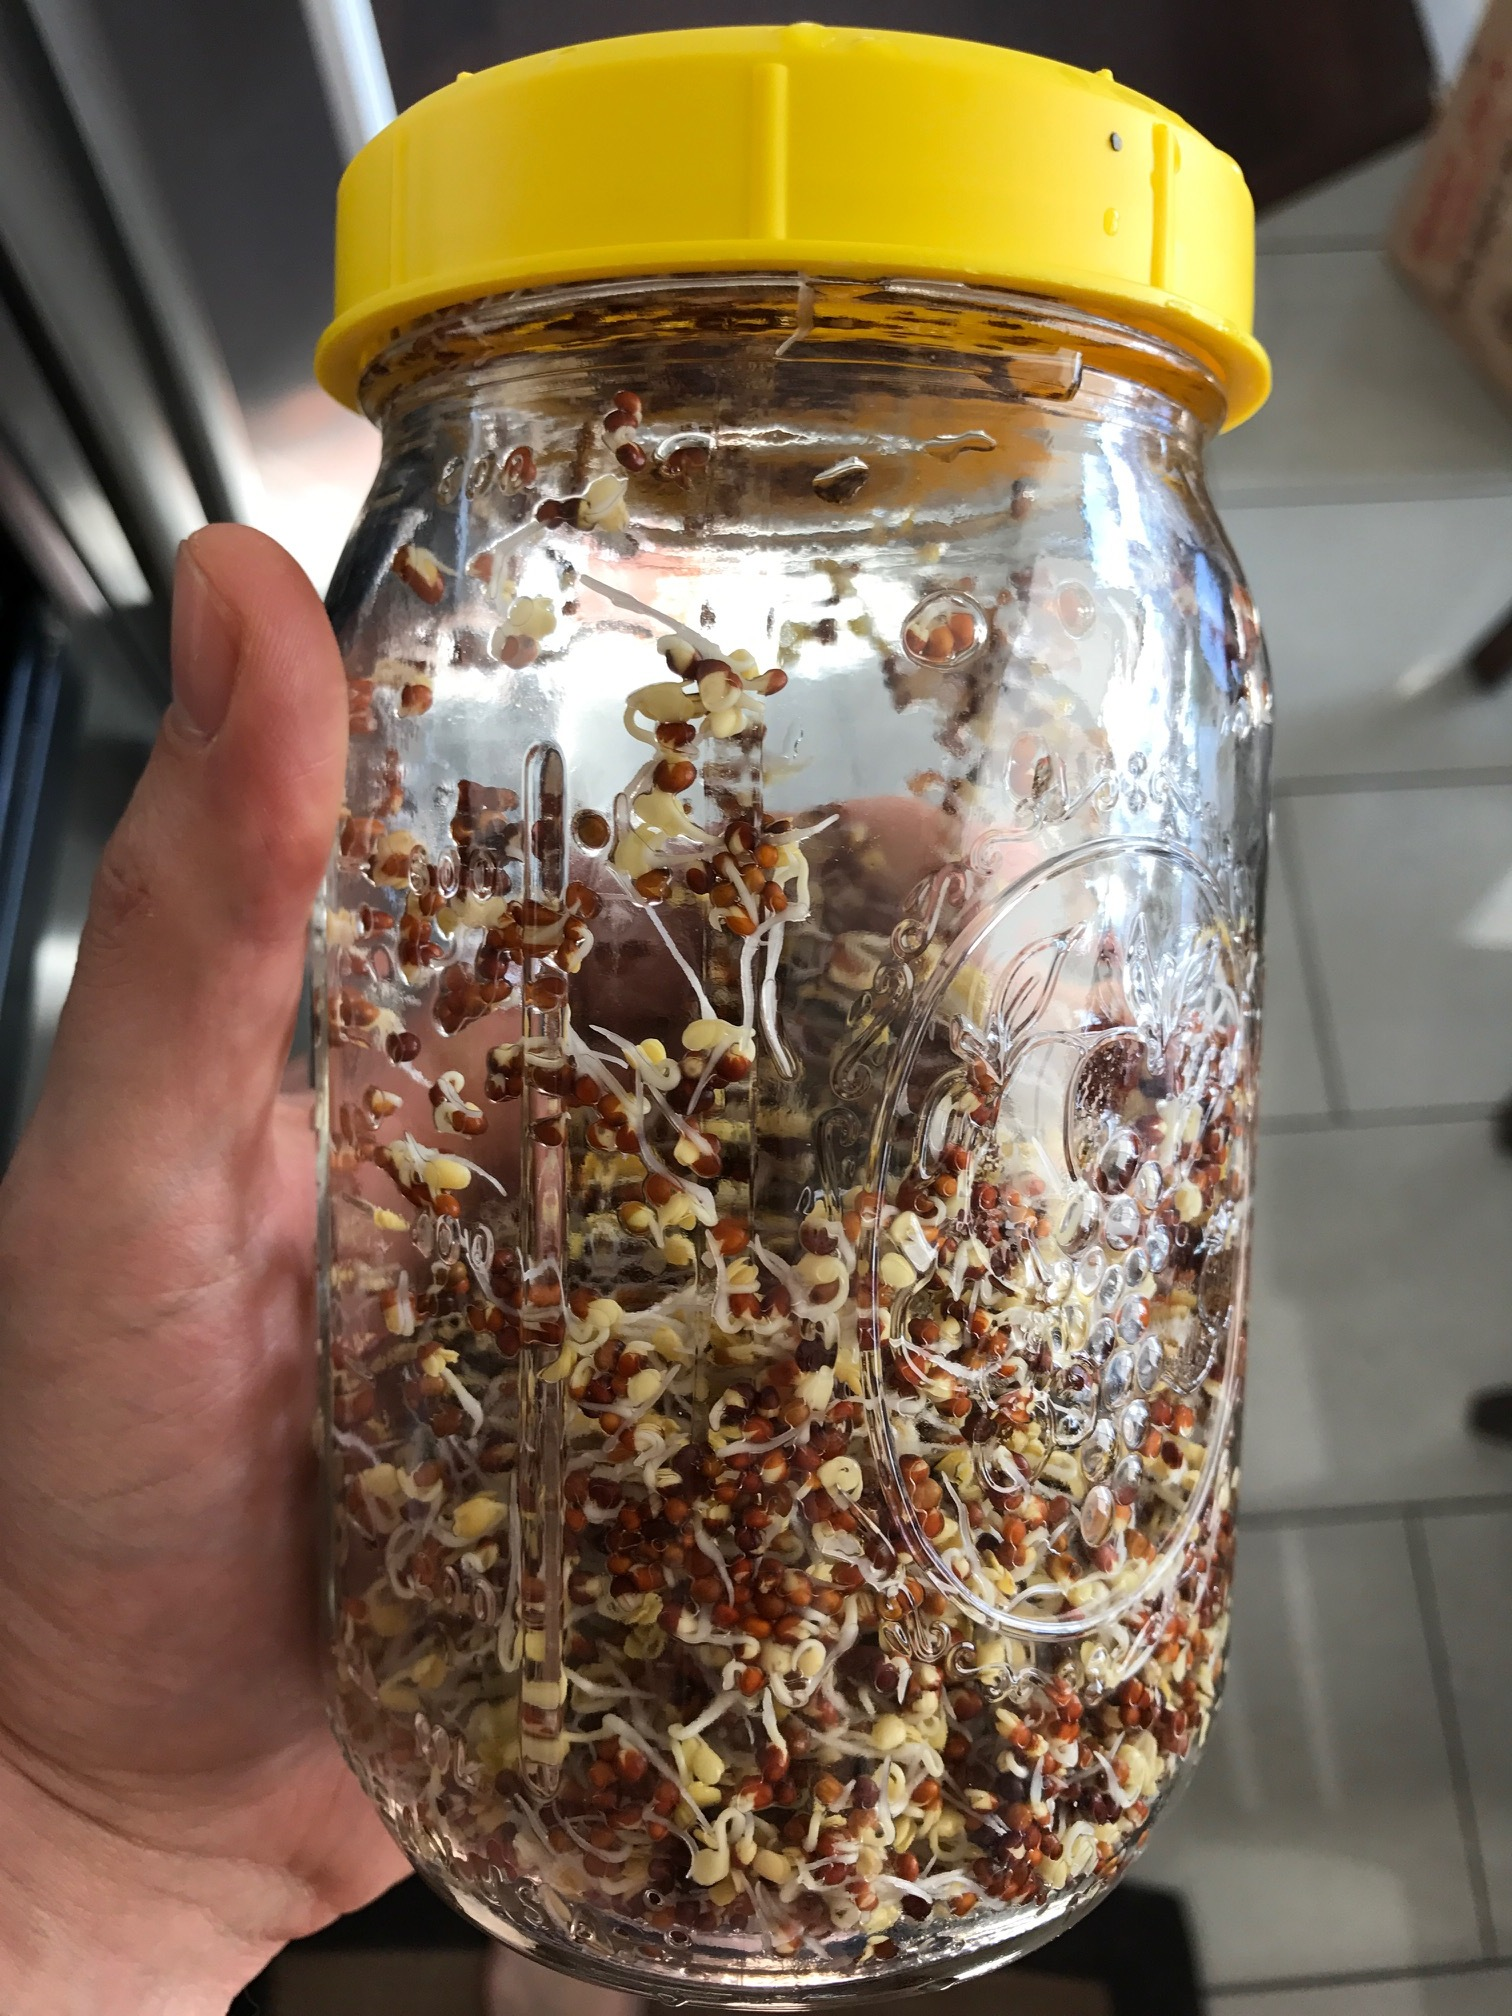 This is my jar! I use a 32-ounce wide mouth Ball mason jar, a sprouting lid (link to the left). These sprouts are about 2 days old (after activation).